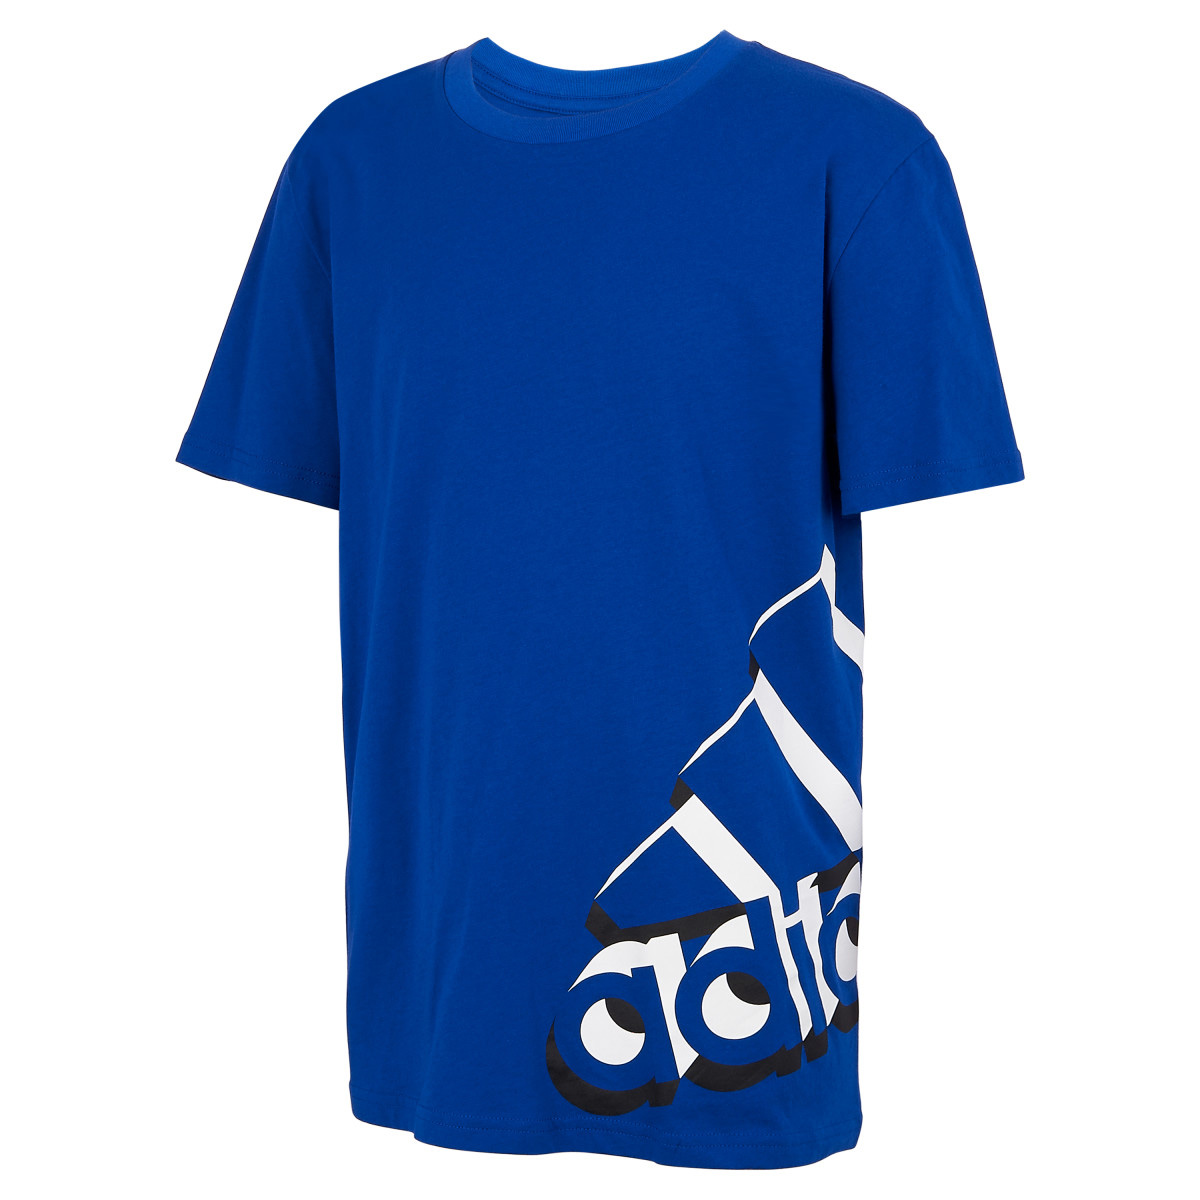 Boys' Short Sleeve Core Repeating Tee, Blue, swatch